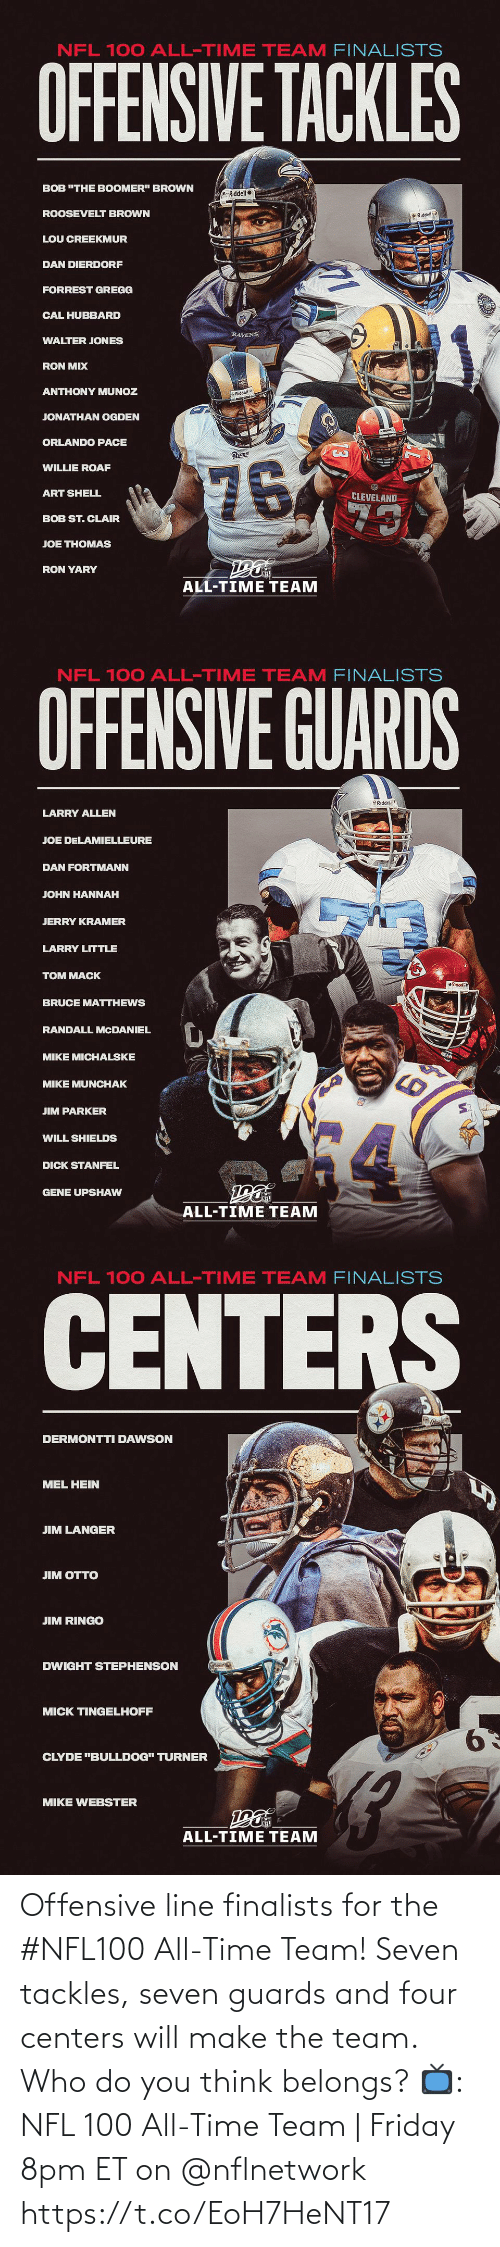 "Turner: NFL 100 ALL-TIME TEAM FINALISTS  OFFENSIVE TACKLES  BOB ""THE BOOMER"" BROWN  Riddel  ROOSEVELT BROWN  O Riddell  LOU CREEKMUR  DAN DIERDORF  FORREST GREGG  CAL HUBBARD  RAVENS  WALTER JONES  RON MIX  ANTHONY MUNOZ  Riddell  JONATHAN OGDEN  ORLANDO PACE  Rams  76  WILLIE ROAF  ART SHELL  CLEVELAND  73  BOB ST. CLAIR  JOE THOMAS  RON YARY  ALL-TIME TEAM   NFL 100 ALL-TIME TEAM FINALISTS  OFFENSIVE GUARDS  Riddel  LARRY ALLEN  JOE DELAMIELLEURE  DAN FORTMANN  JOHN HANNAH  JERRY KRAMER  LARRY LITTLE  TOM MACK  BRUCE MATTHEWS  RANDALL MCDANIEL  MIKE MICHALSKE  MIKE MUNCHAK  JIM PARKER  WILL SHIELDS  DICK STANFEL  GENE UPSHAW  ALL-TIME TEAM   NFL 100 ALL-TIME TEAM FINALISTS  CENTERS  DERMONTTI DAWSON  MEL HEIN  JIM LANGER  ЛM OТTO  JIM RINGO  DWIGHT STEPHENSON  MICK TINGELHOFF  9.  CLYDE ""BULLDOG"" TURNER  MIKE WEBSTER  ALL-TIME TEAM Offensive line finalists for the #NFL100 All-Time Team!  Seven tackles, seven guards and four centers will make the team. Who do you think belongs?  📺: NFL 100 All-Time Team 